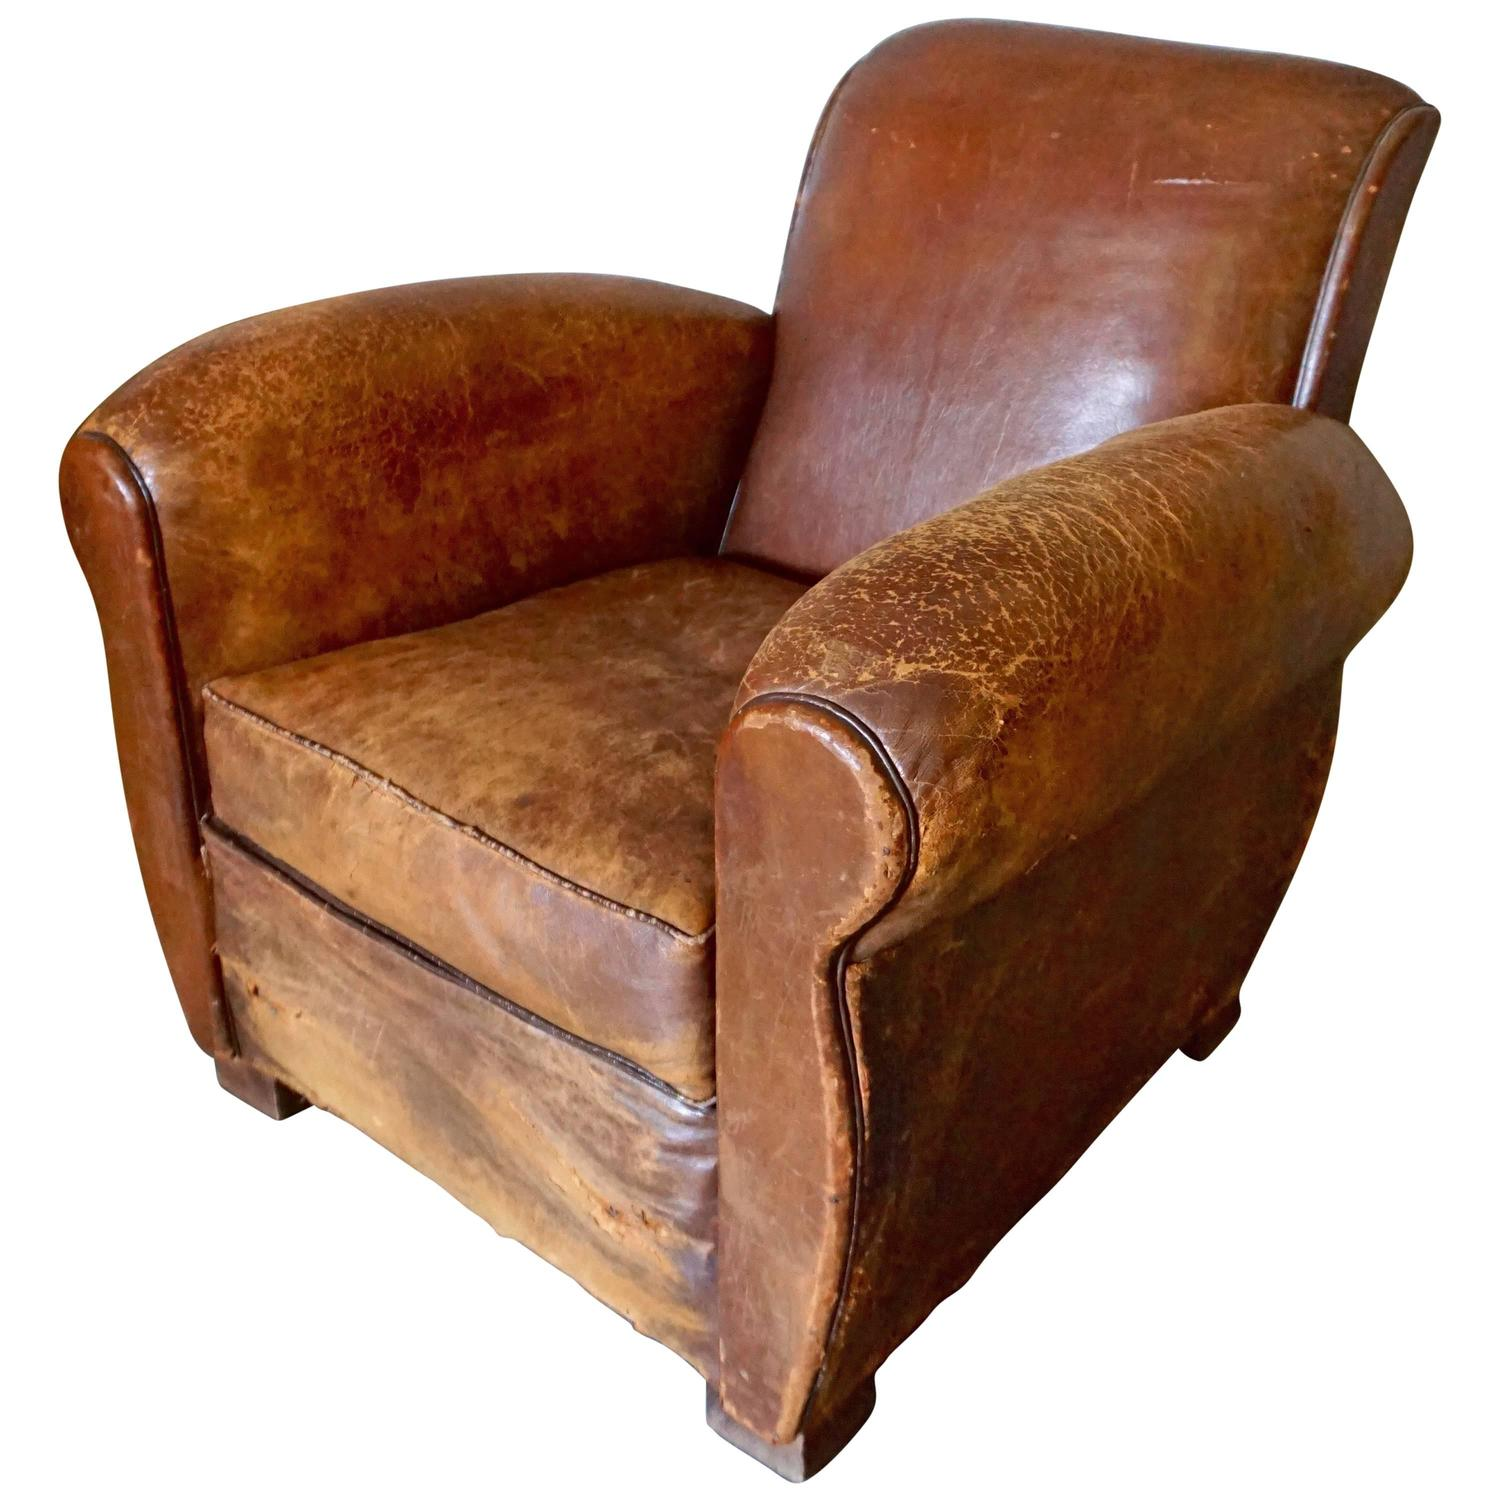 Club Chair Leather Distressed Art Deco French Cognac Leather Club Chair